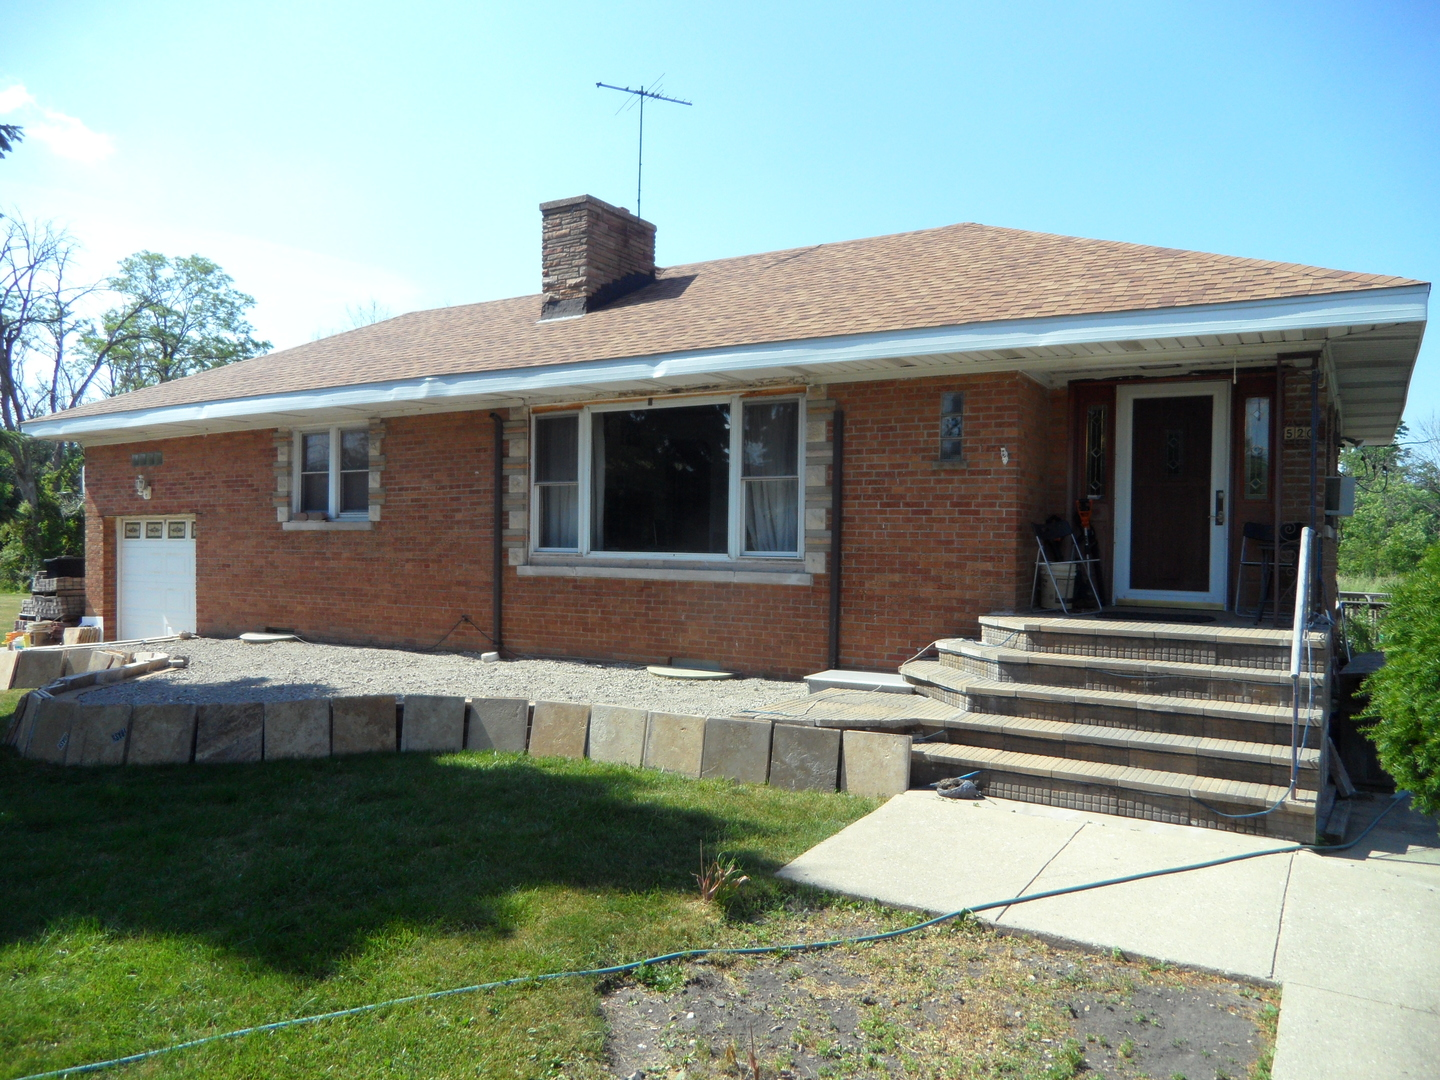 5200 West 175TH Street, Tinley Park in Cook County, IL 60477 Home for Sale